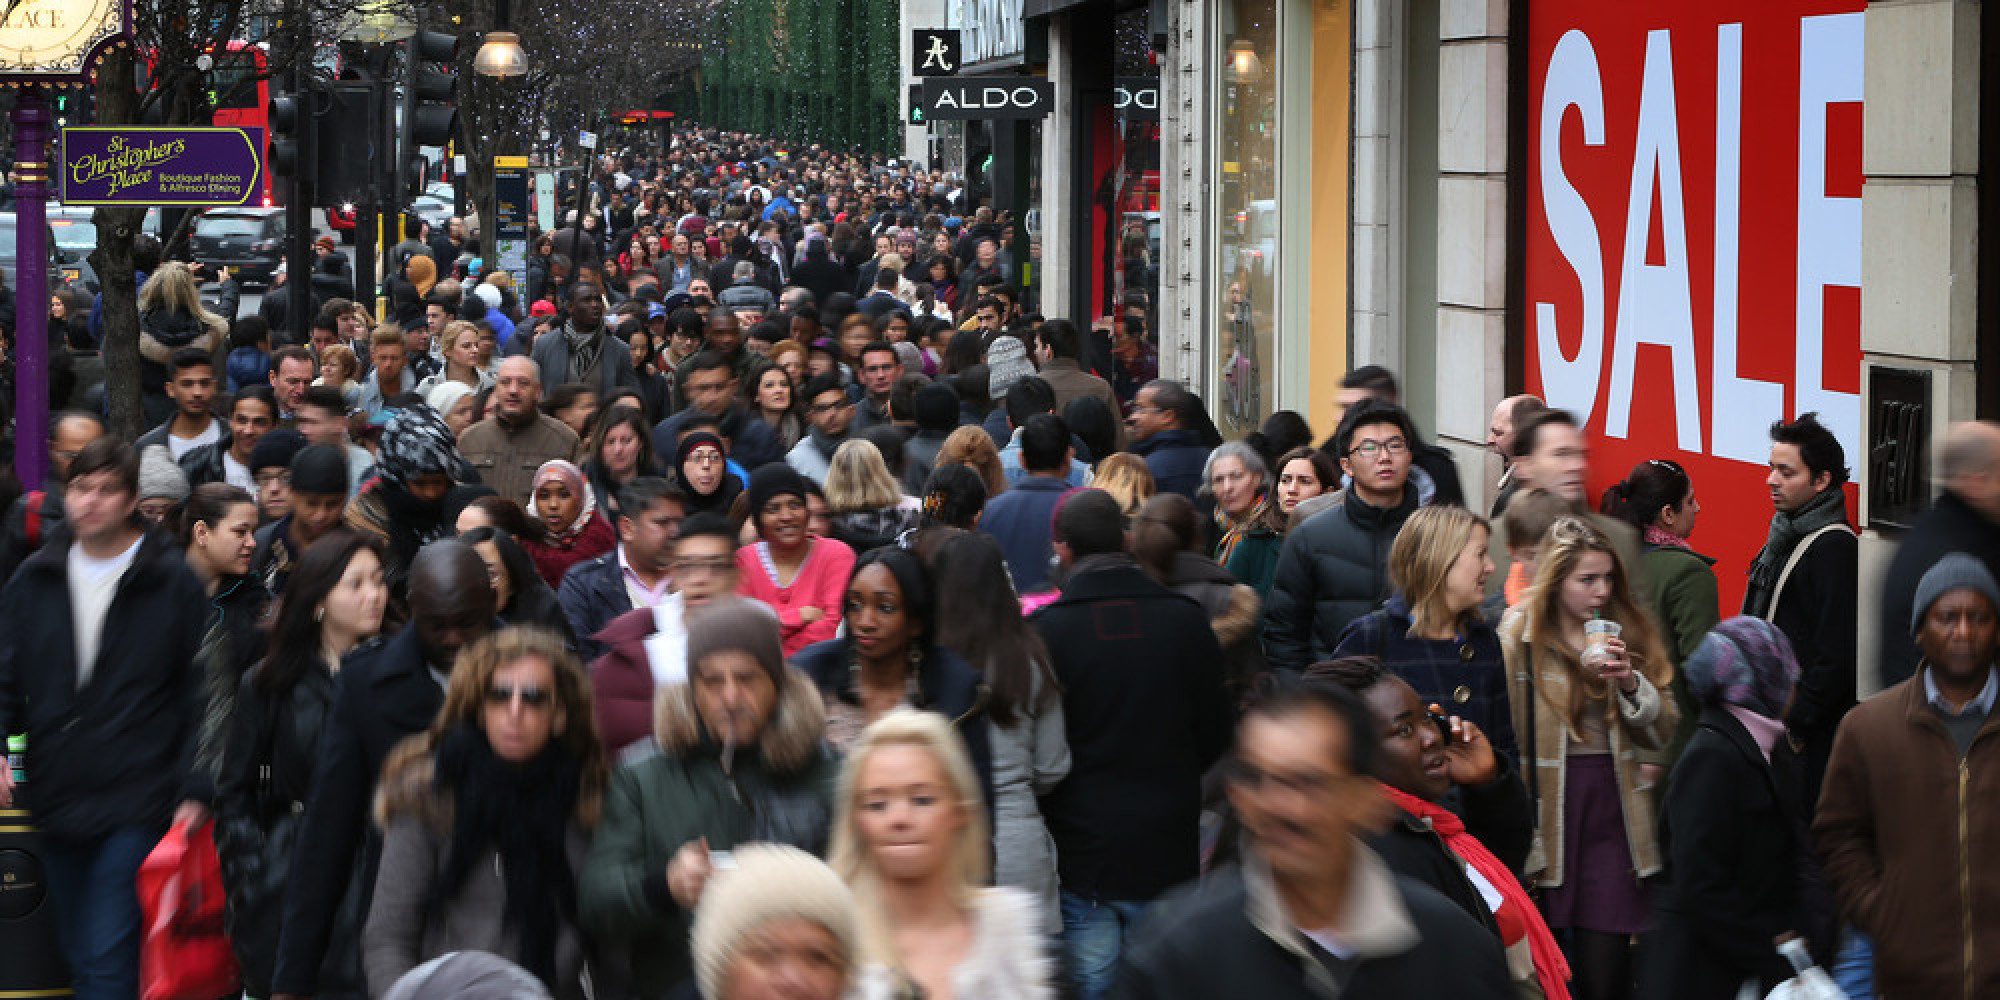 LONDON, ENGLAND - DECEMBER 26: Shoppers fill Oxford Street on December 26, 2012 in London, England. Thousands of shoppers are in London looking for a bargain in the traditional Boxing Day sales. (Photo by Peter Macdiarmid/Getty Images)